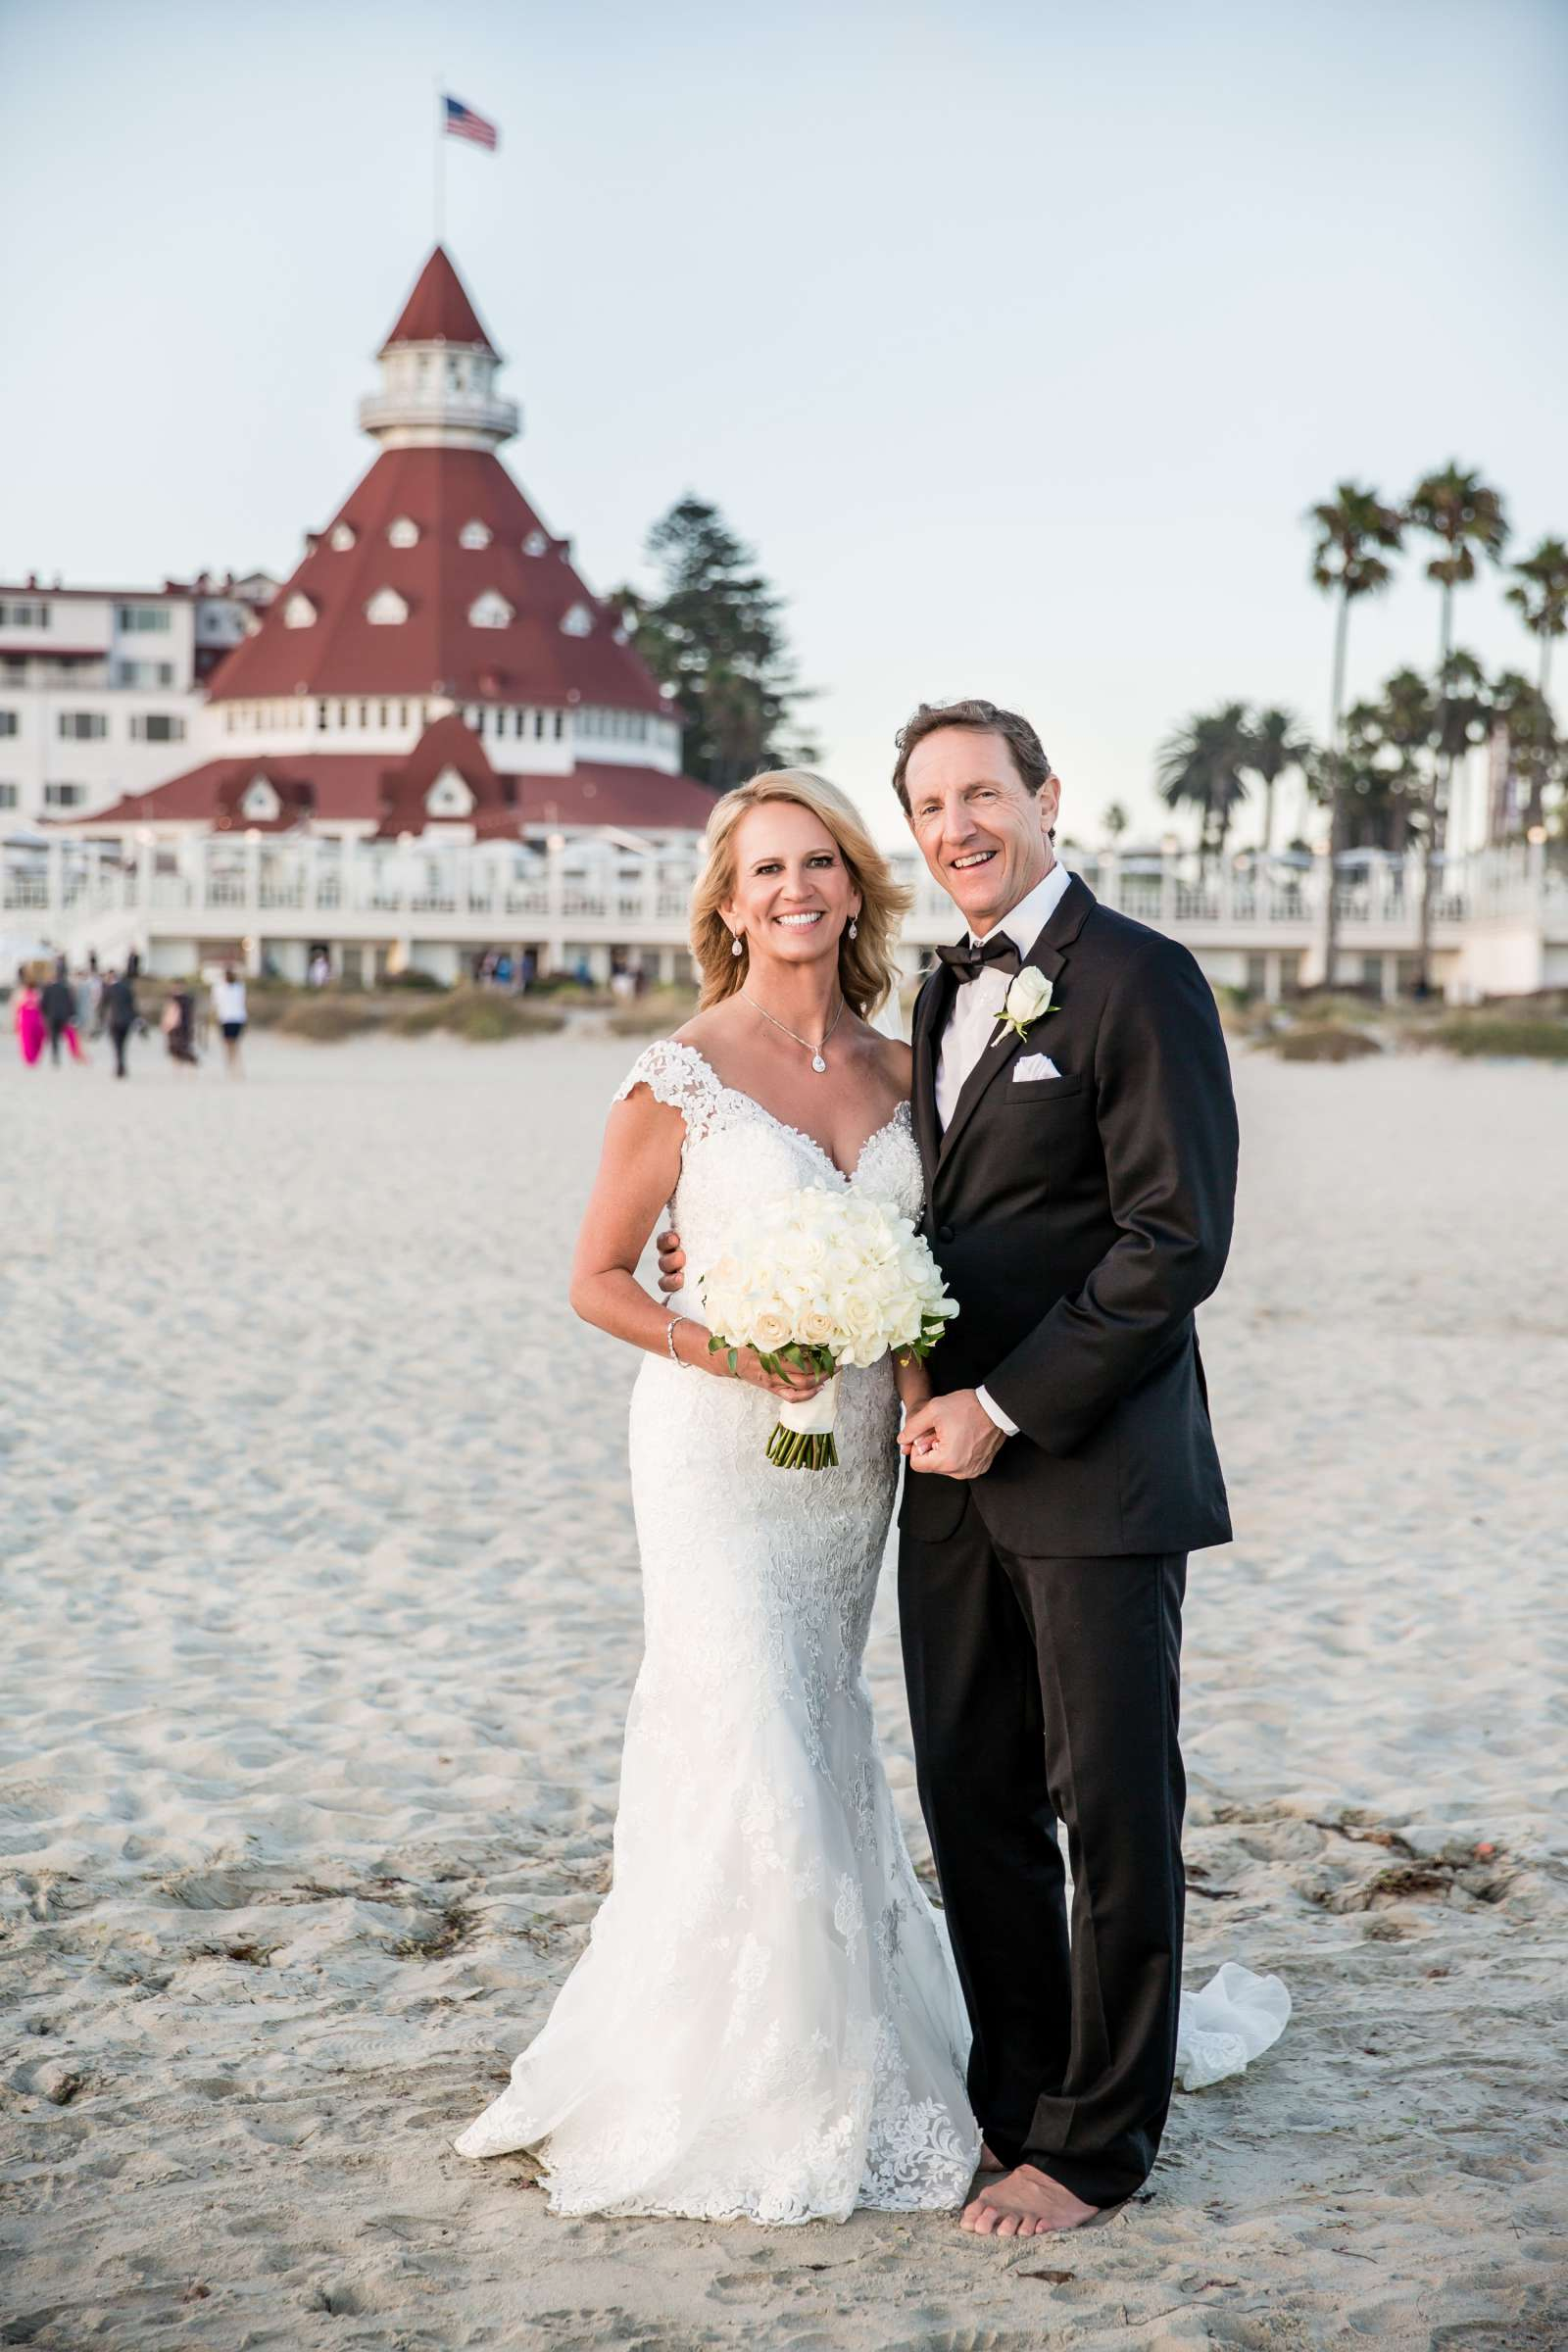 Hotel Del Coronado Wedding coordinated by Creative Affairs Inc, Diane and Paul Wedding Photo #5 by True Photography